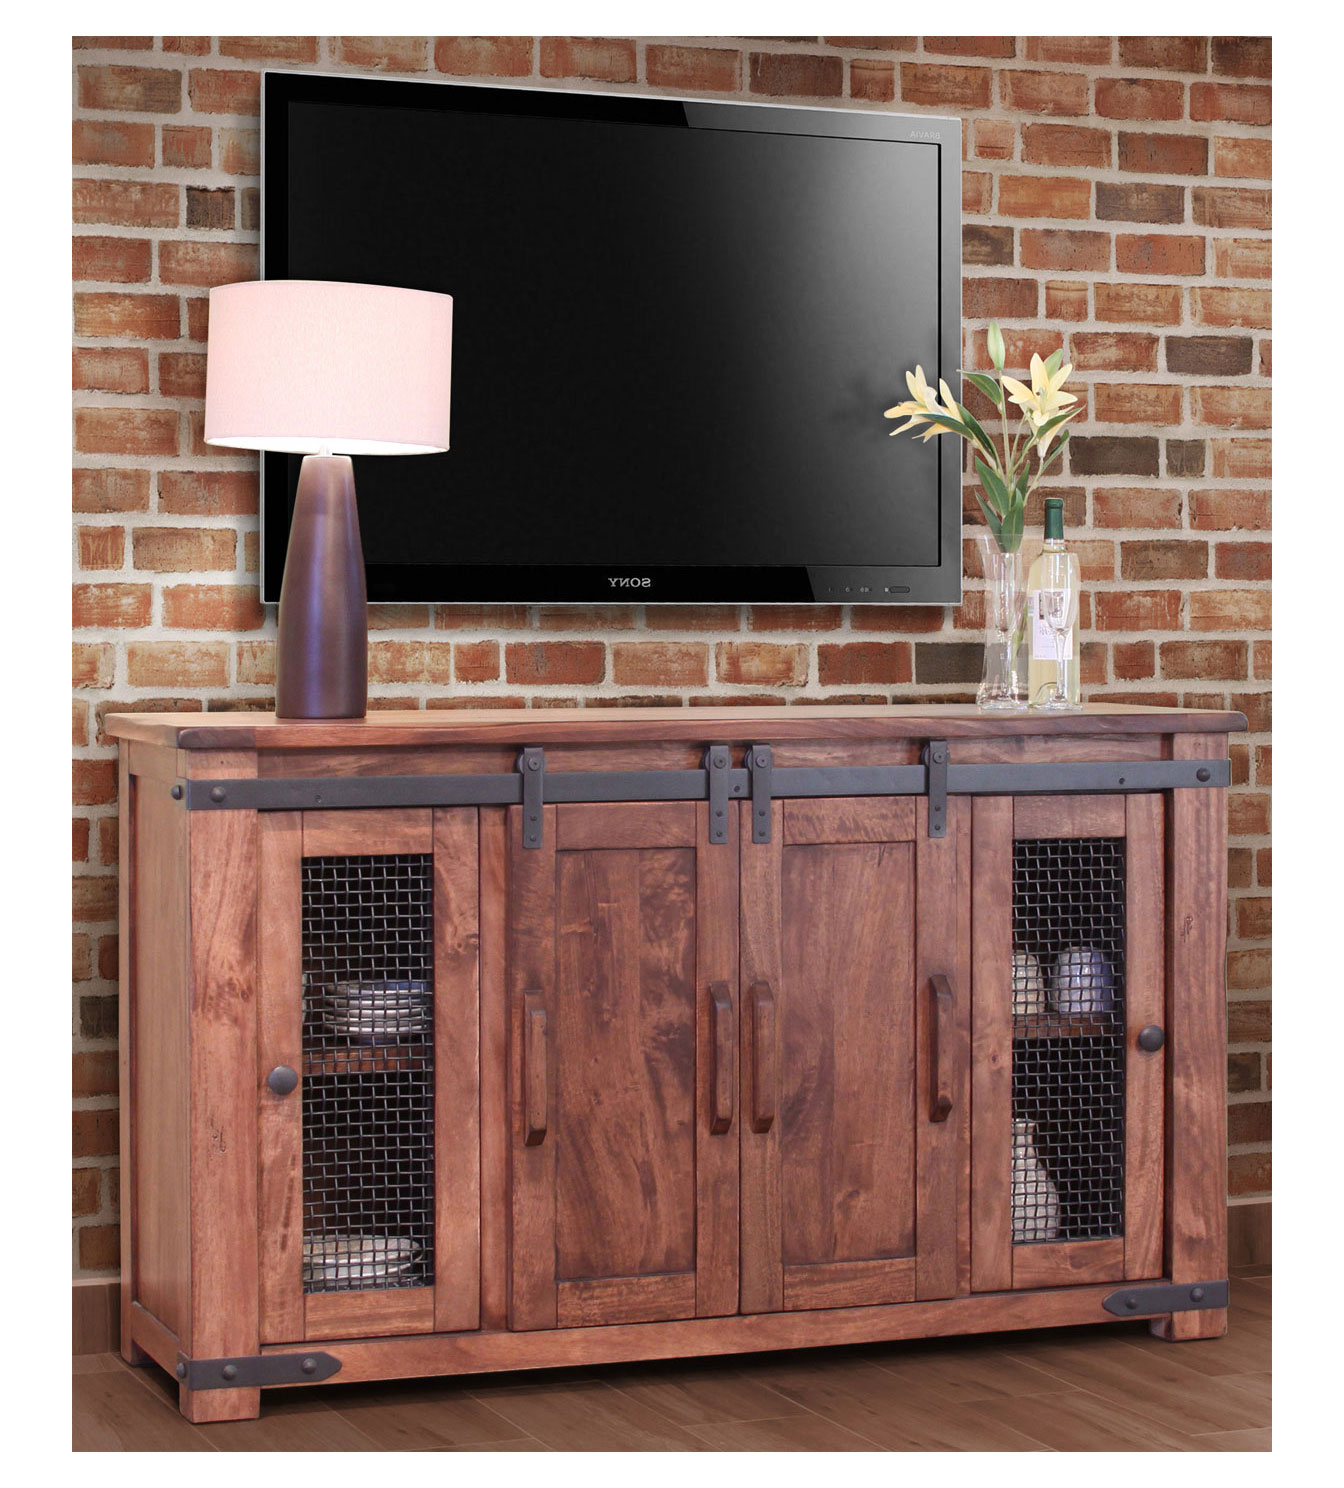 Modern Low Profile Tv Stands In Most Popular Tall Corner Tv Stand White Low Profile Wonderful Modern Stands For (View 19 of 20)